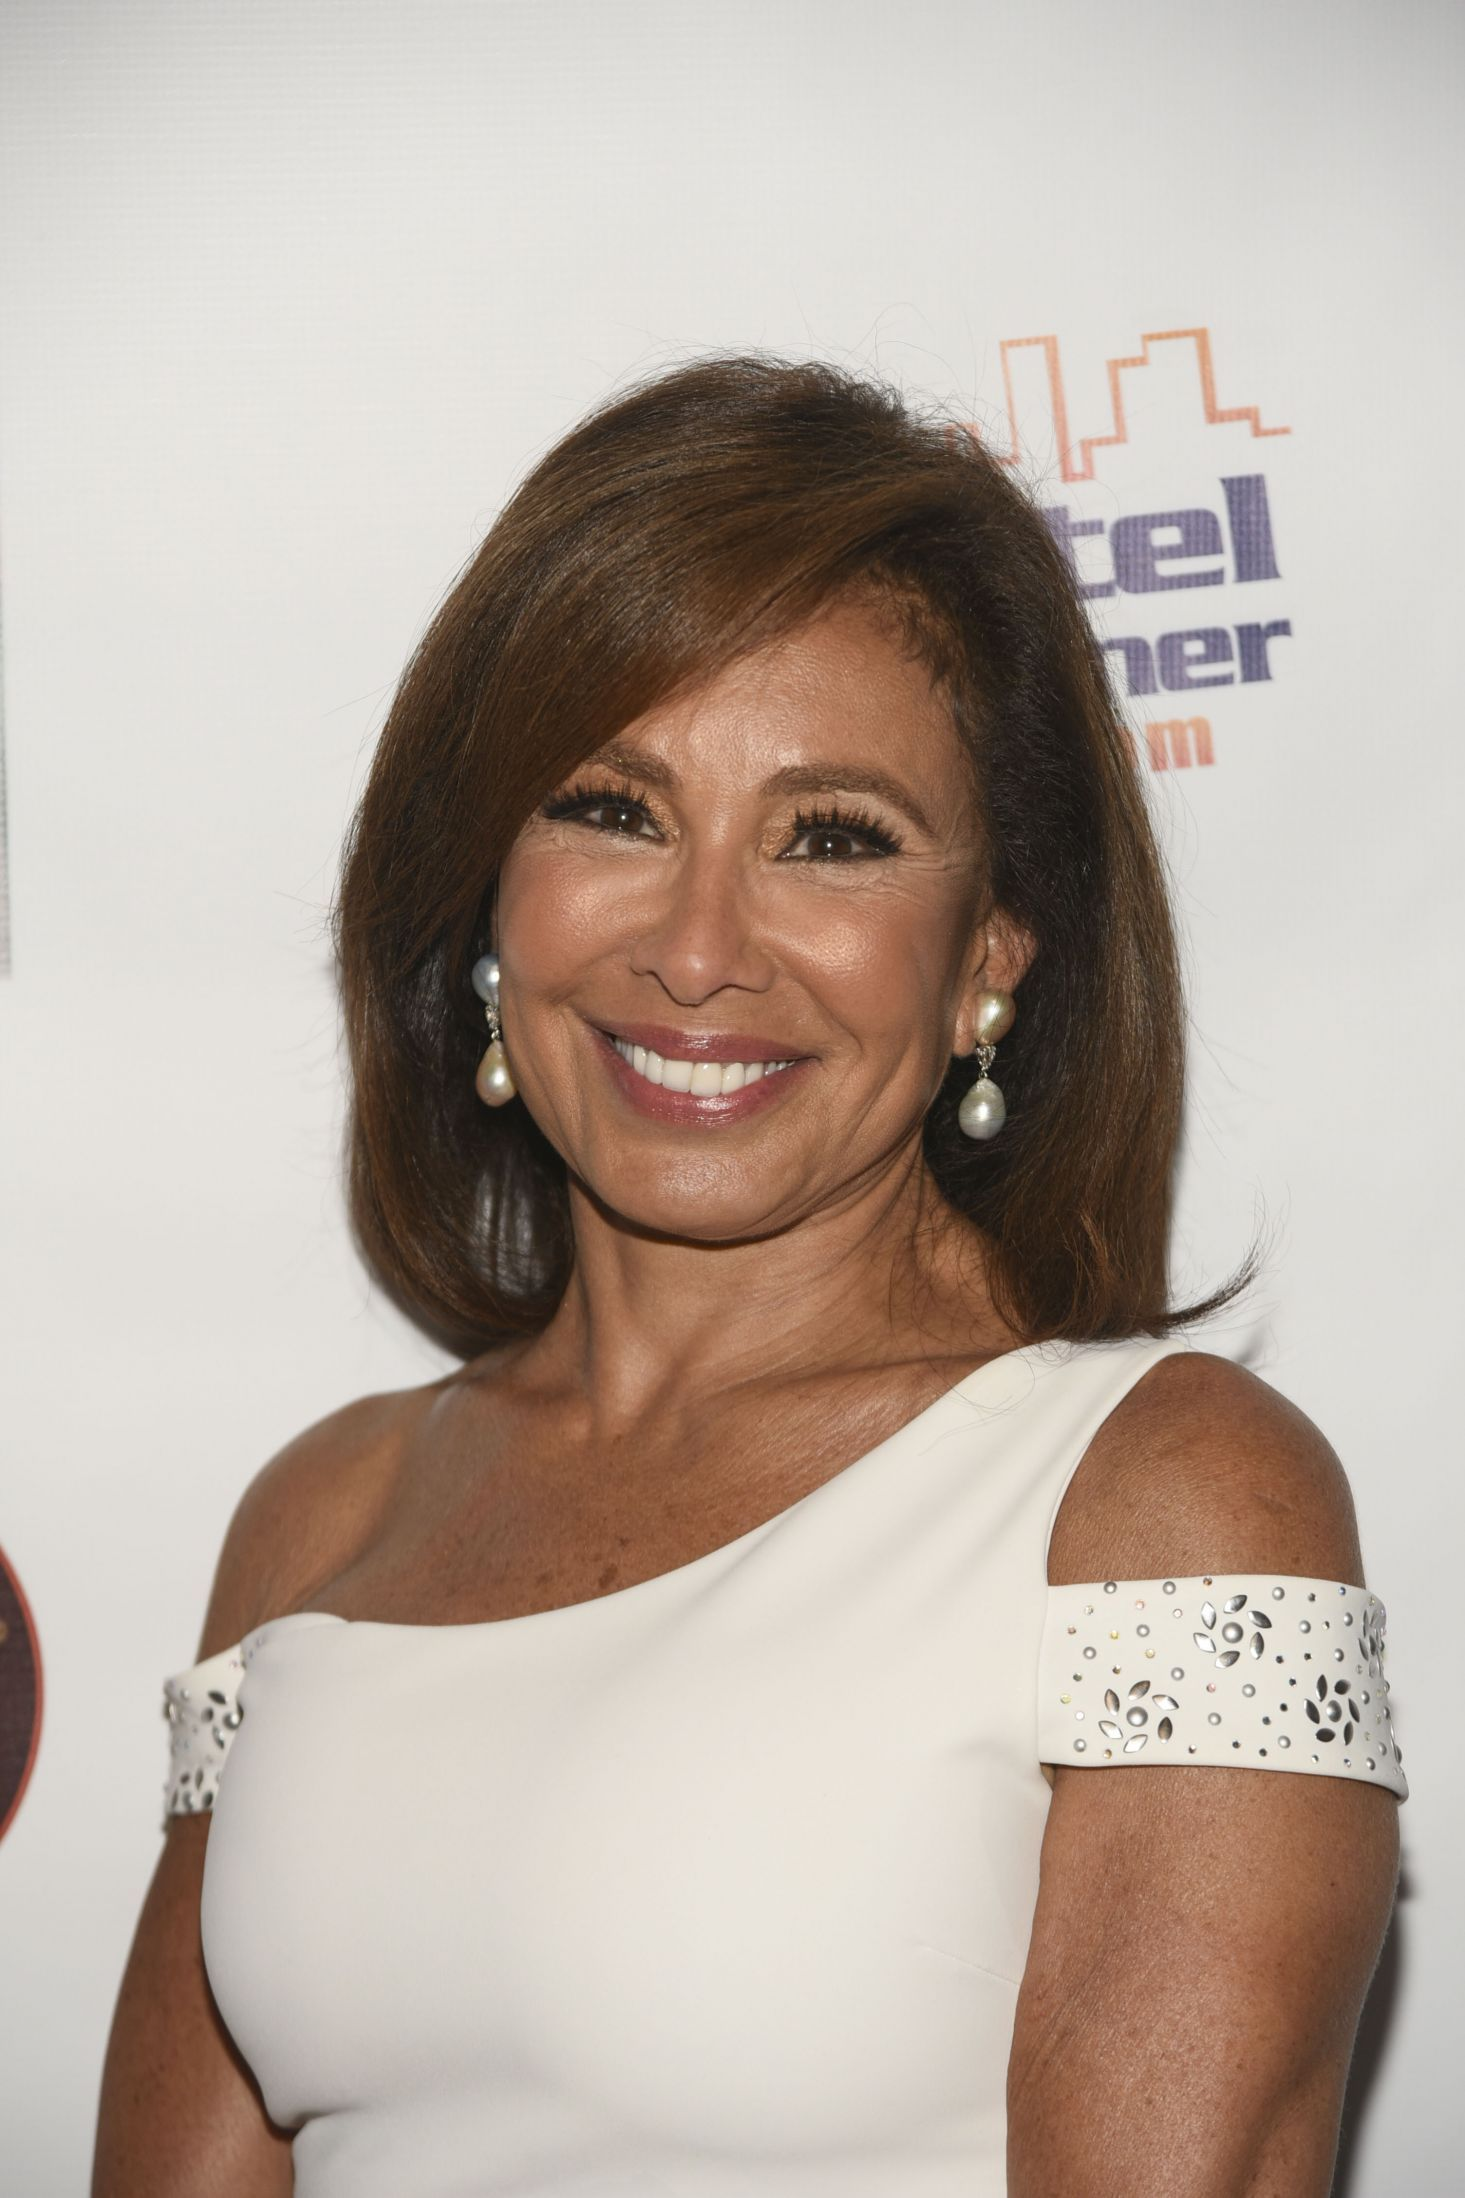 Judge Jeanine Pirro at the Jeannine Pirro's book signing